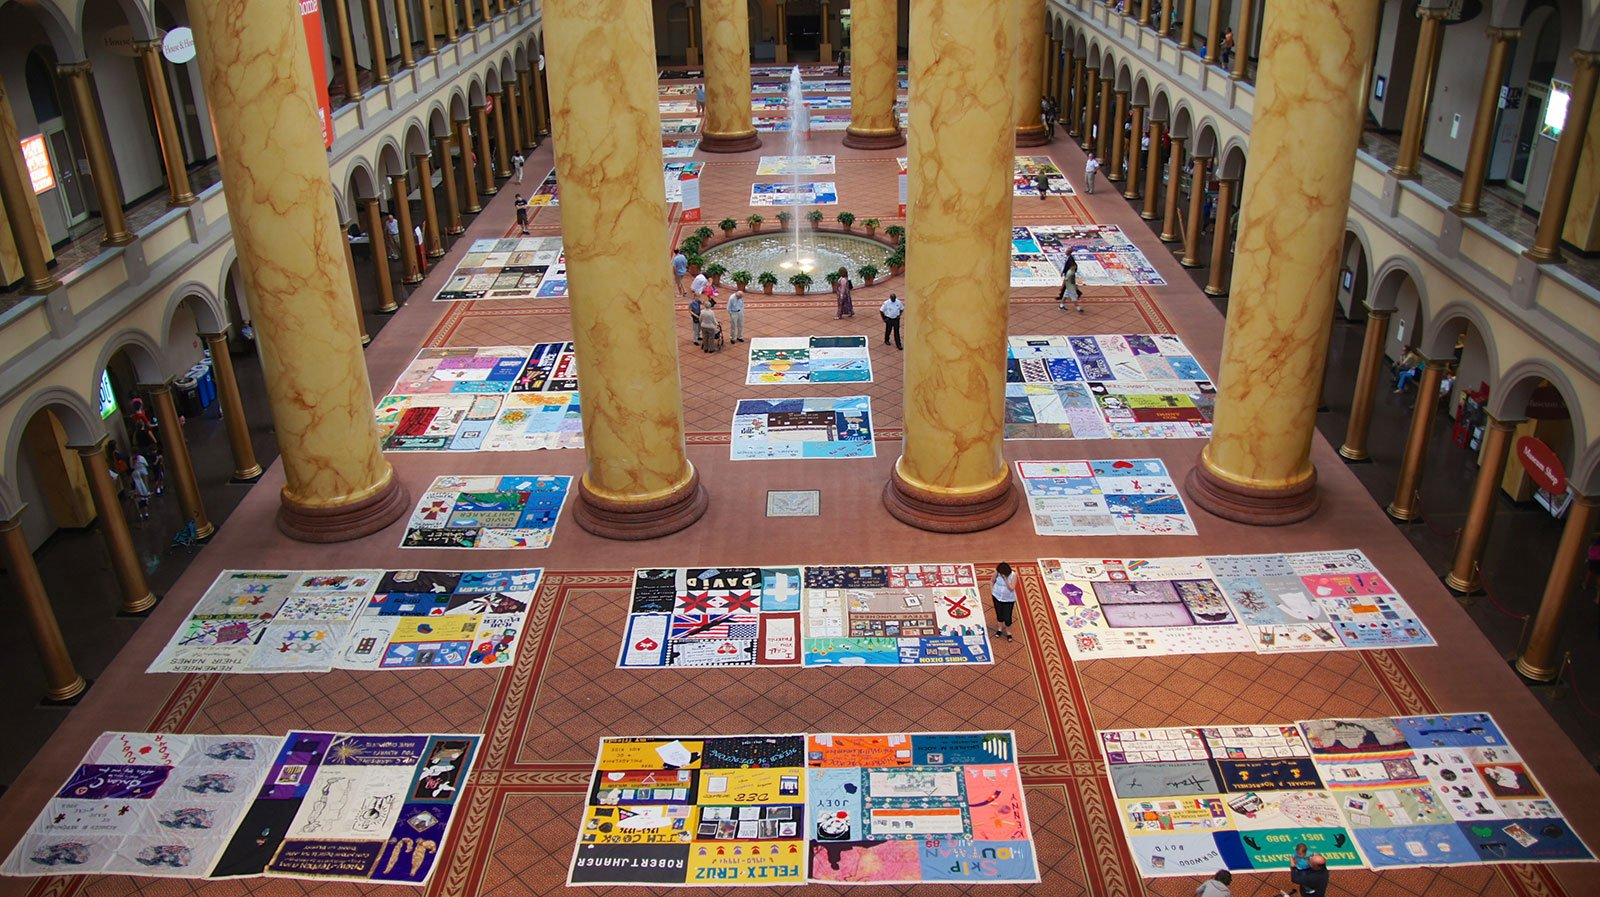 The AIDS Memorial Quilt on display at the National Building Museum in Washington, D.C. in 2012